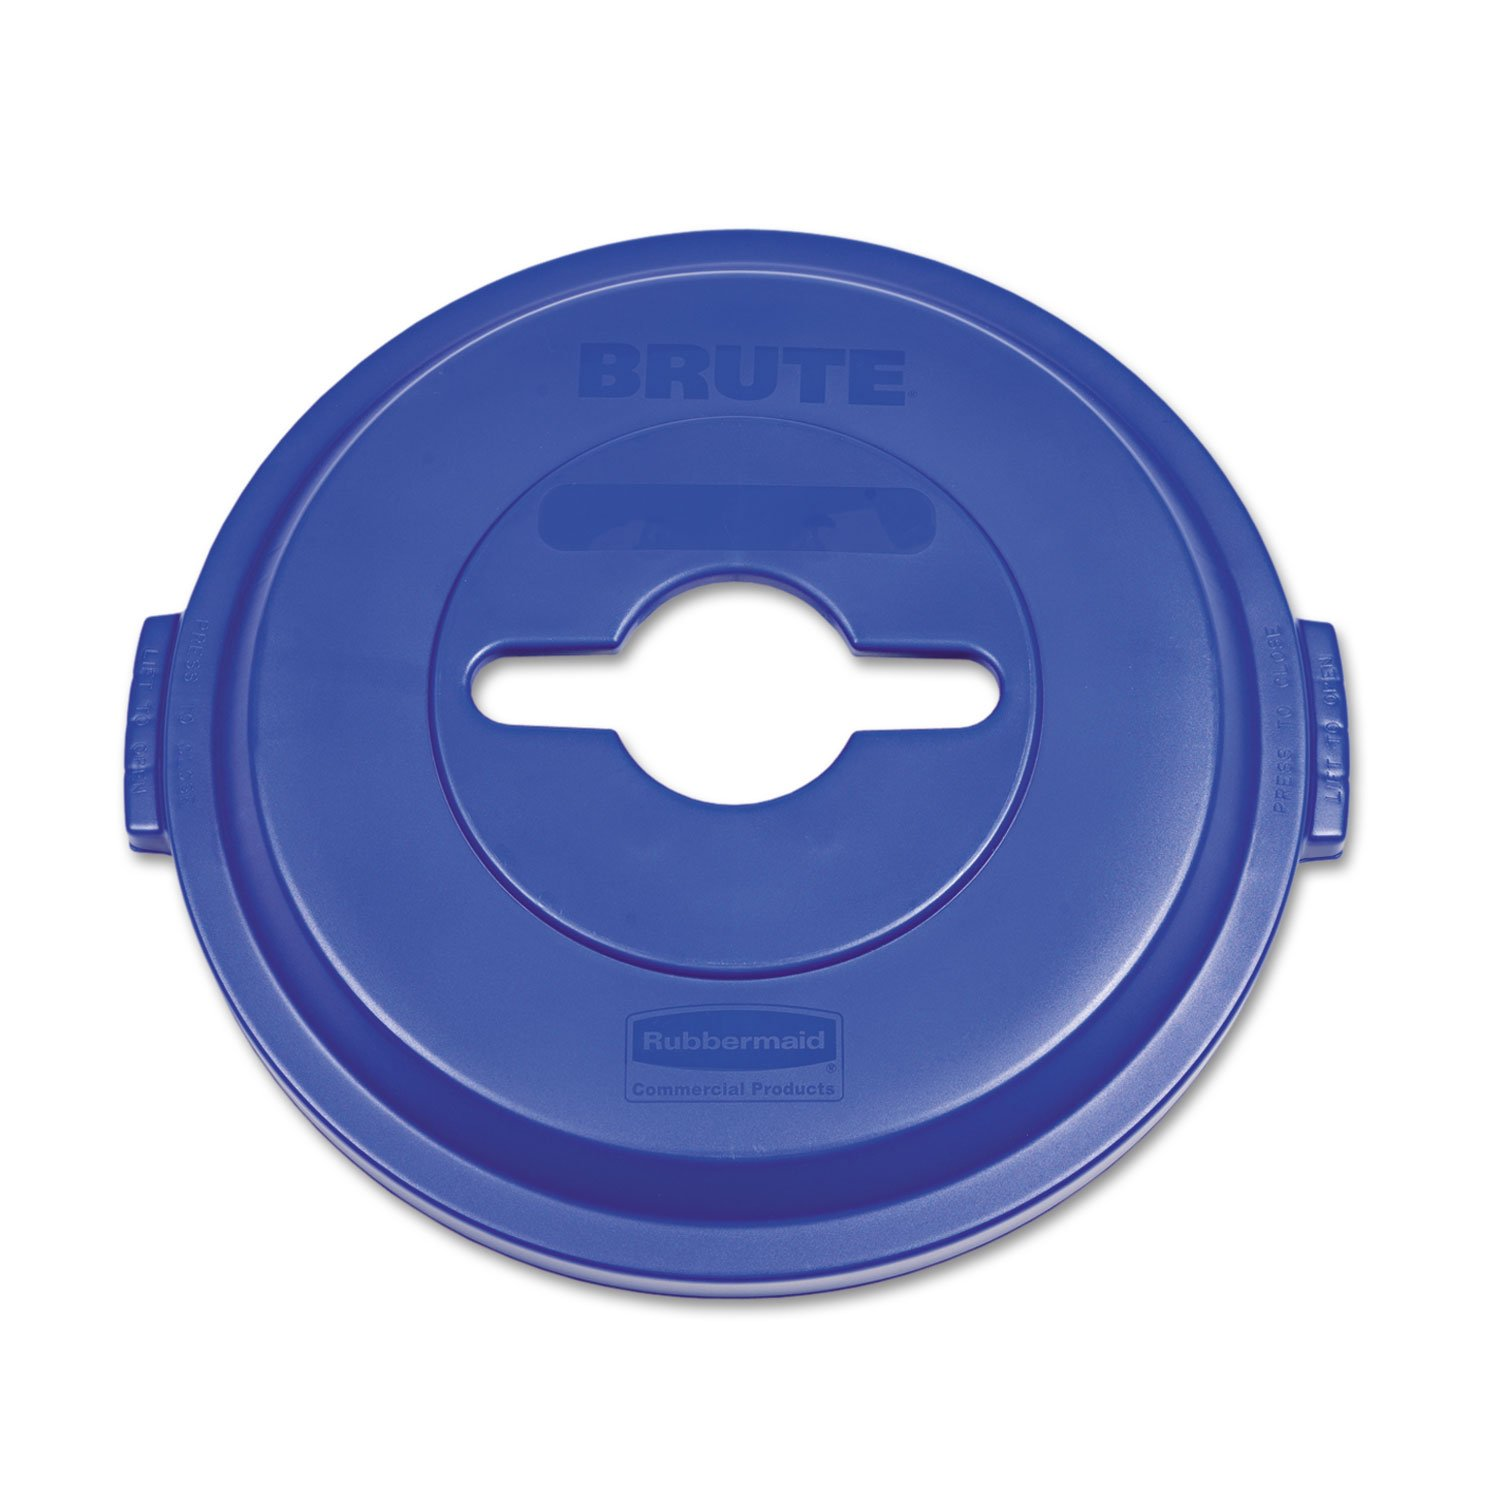 Rubbermaid 1788380 Single Stream Recycling Top for Brute 32gal Containers, Blue by Rubbermaid Commercial (Image #1)